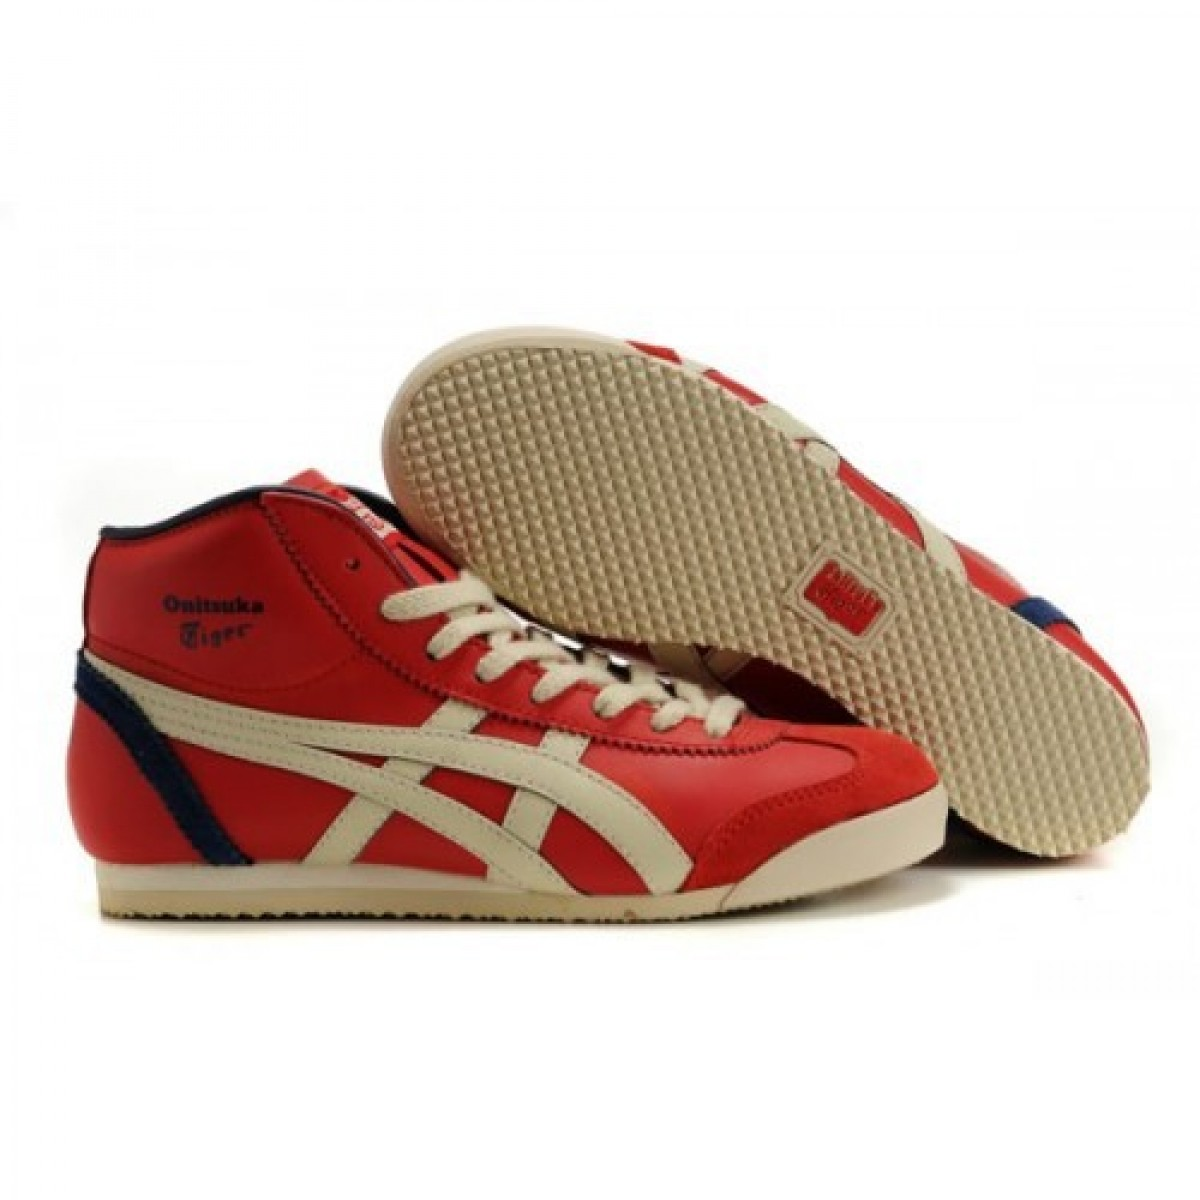 BH4774 Soldes Asics Mexico 66 Mid Runner Chaussures Noir Rouge Beige 85607223 Pas Cher